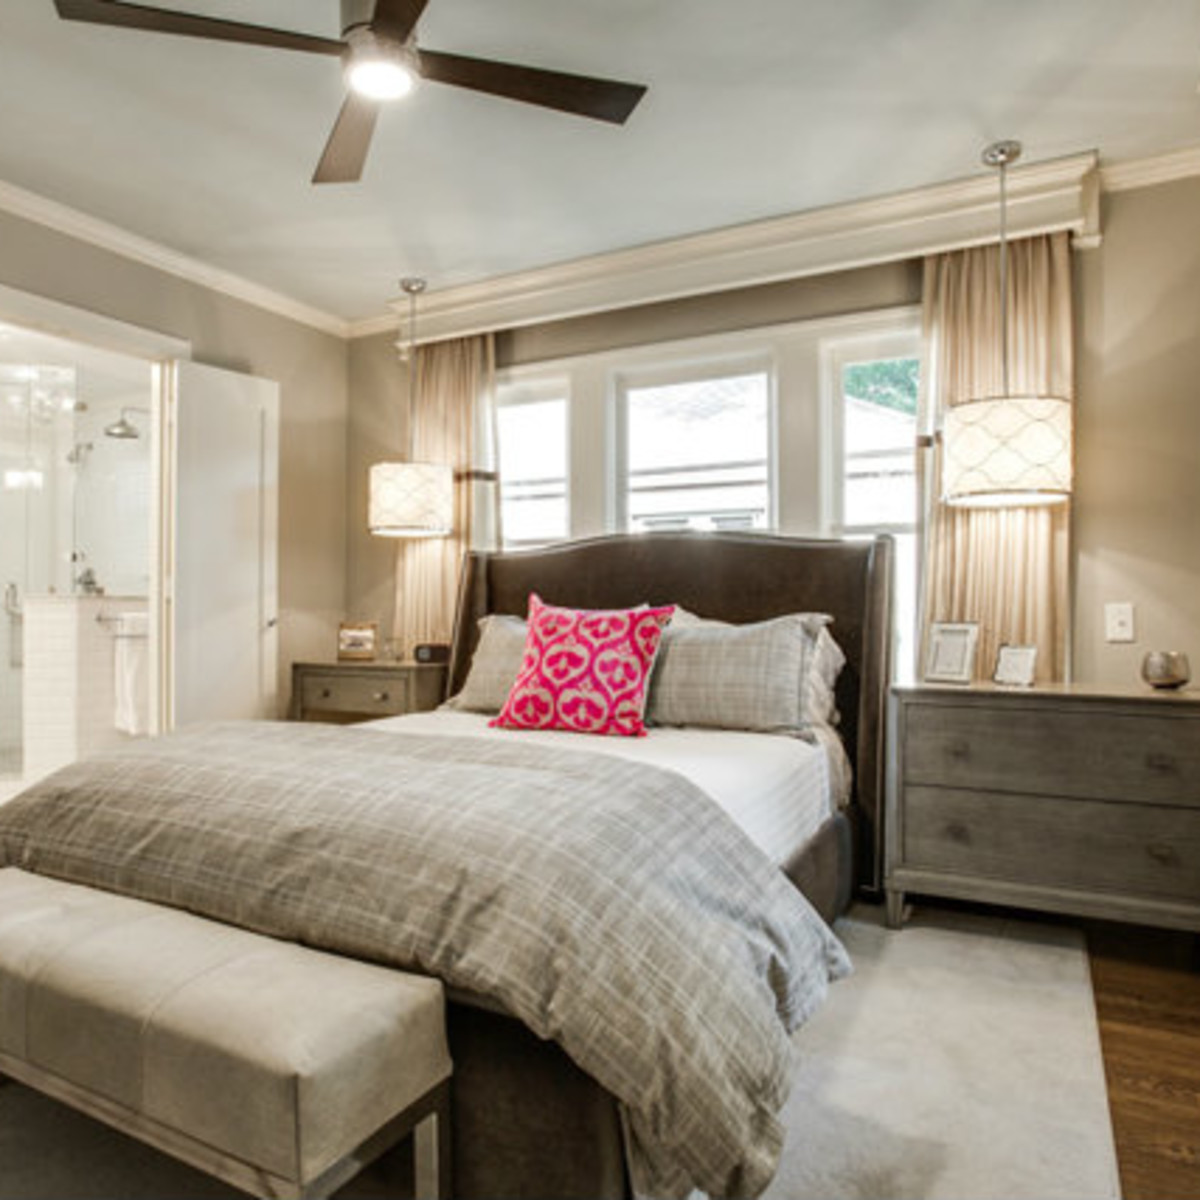 Master bedroom at 811 Monte Vista Dr. in Dallas